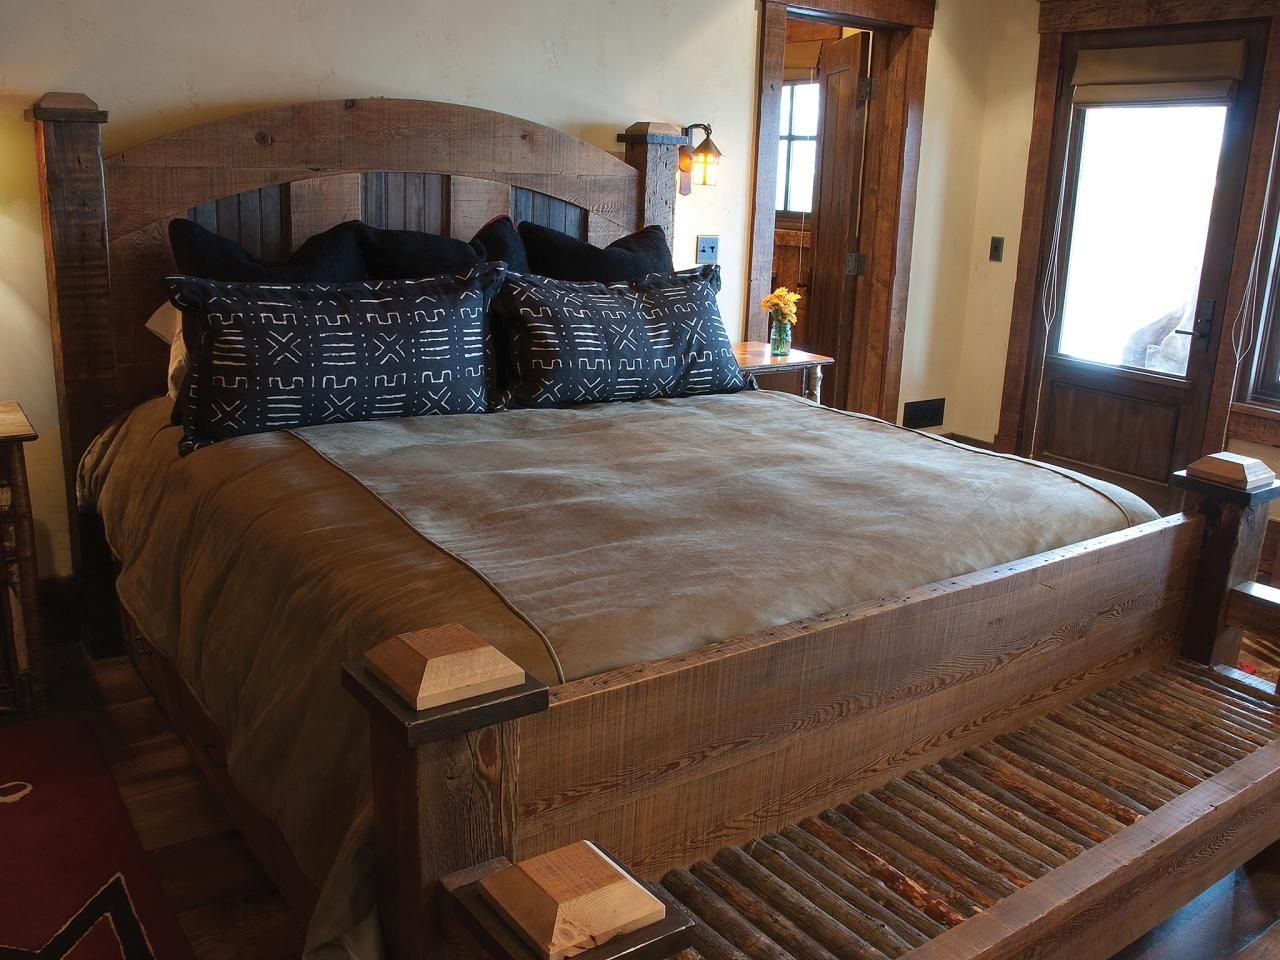 A custom king bed made from historic materials anchors